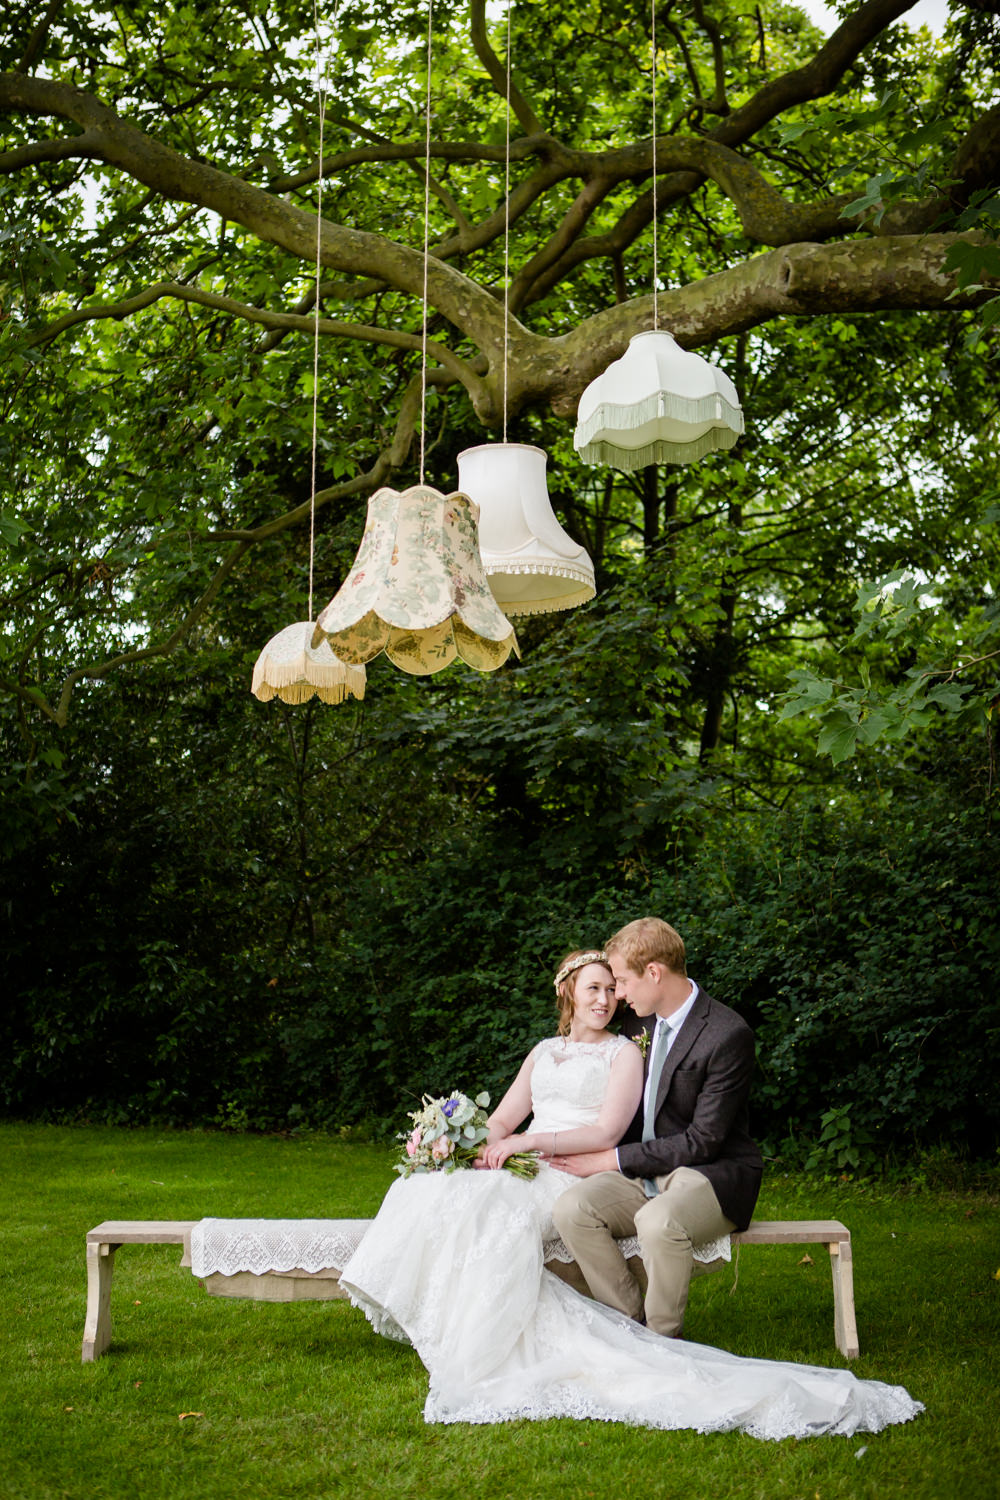 Back To The Garden Wedding Venue In Norfolk With Enchanted